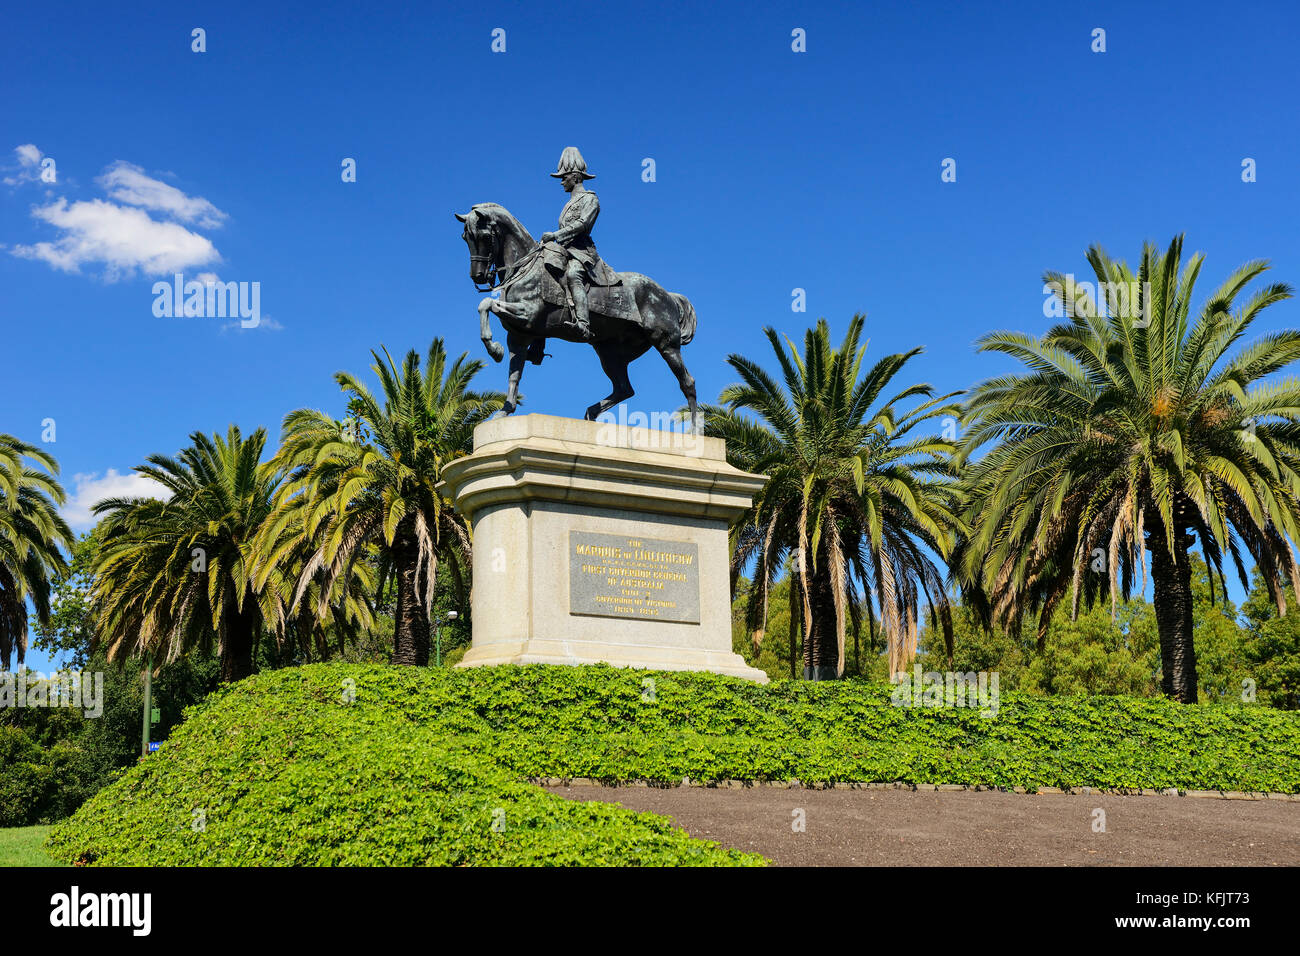 Bronze equestrian statue of Lord Hopetoun, first Governor-General of Australia, within the King's Domain Park in Melbourne, Victoria, Australia Stock Photo